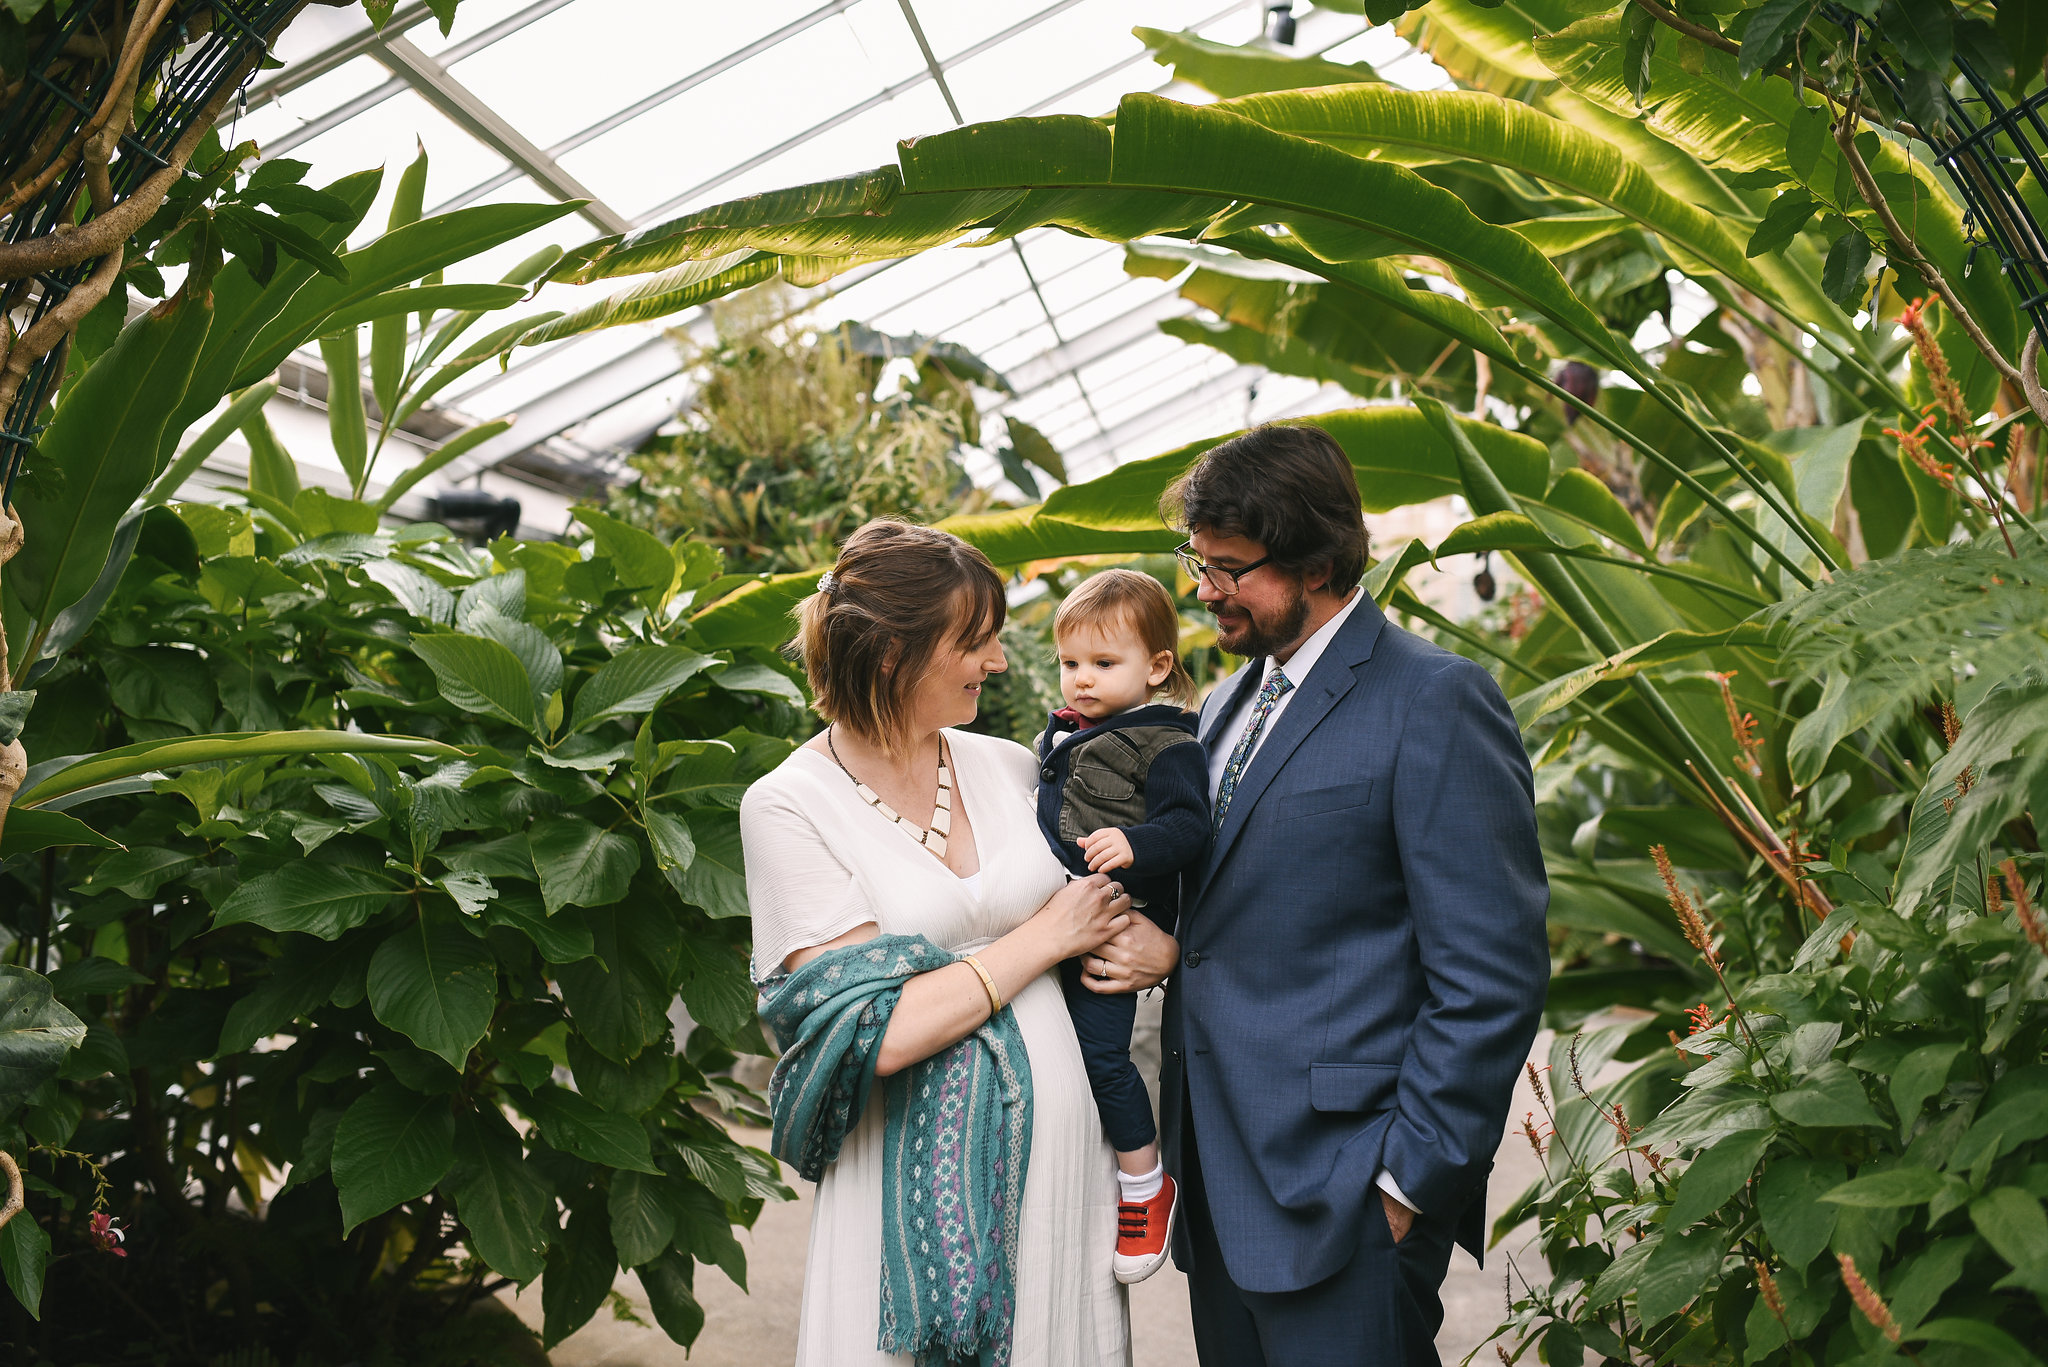 Rawlings Conservatory, Druid Hill Park, Intimate Wedding, Nature, Baltimore Wedding Photographer, Romantic, Classic, Bride and Groom Holding Infant Son